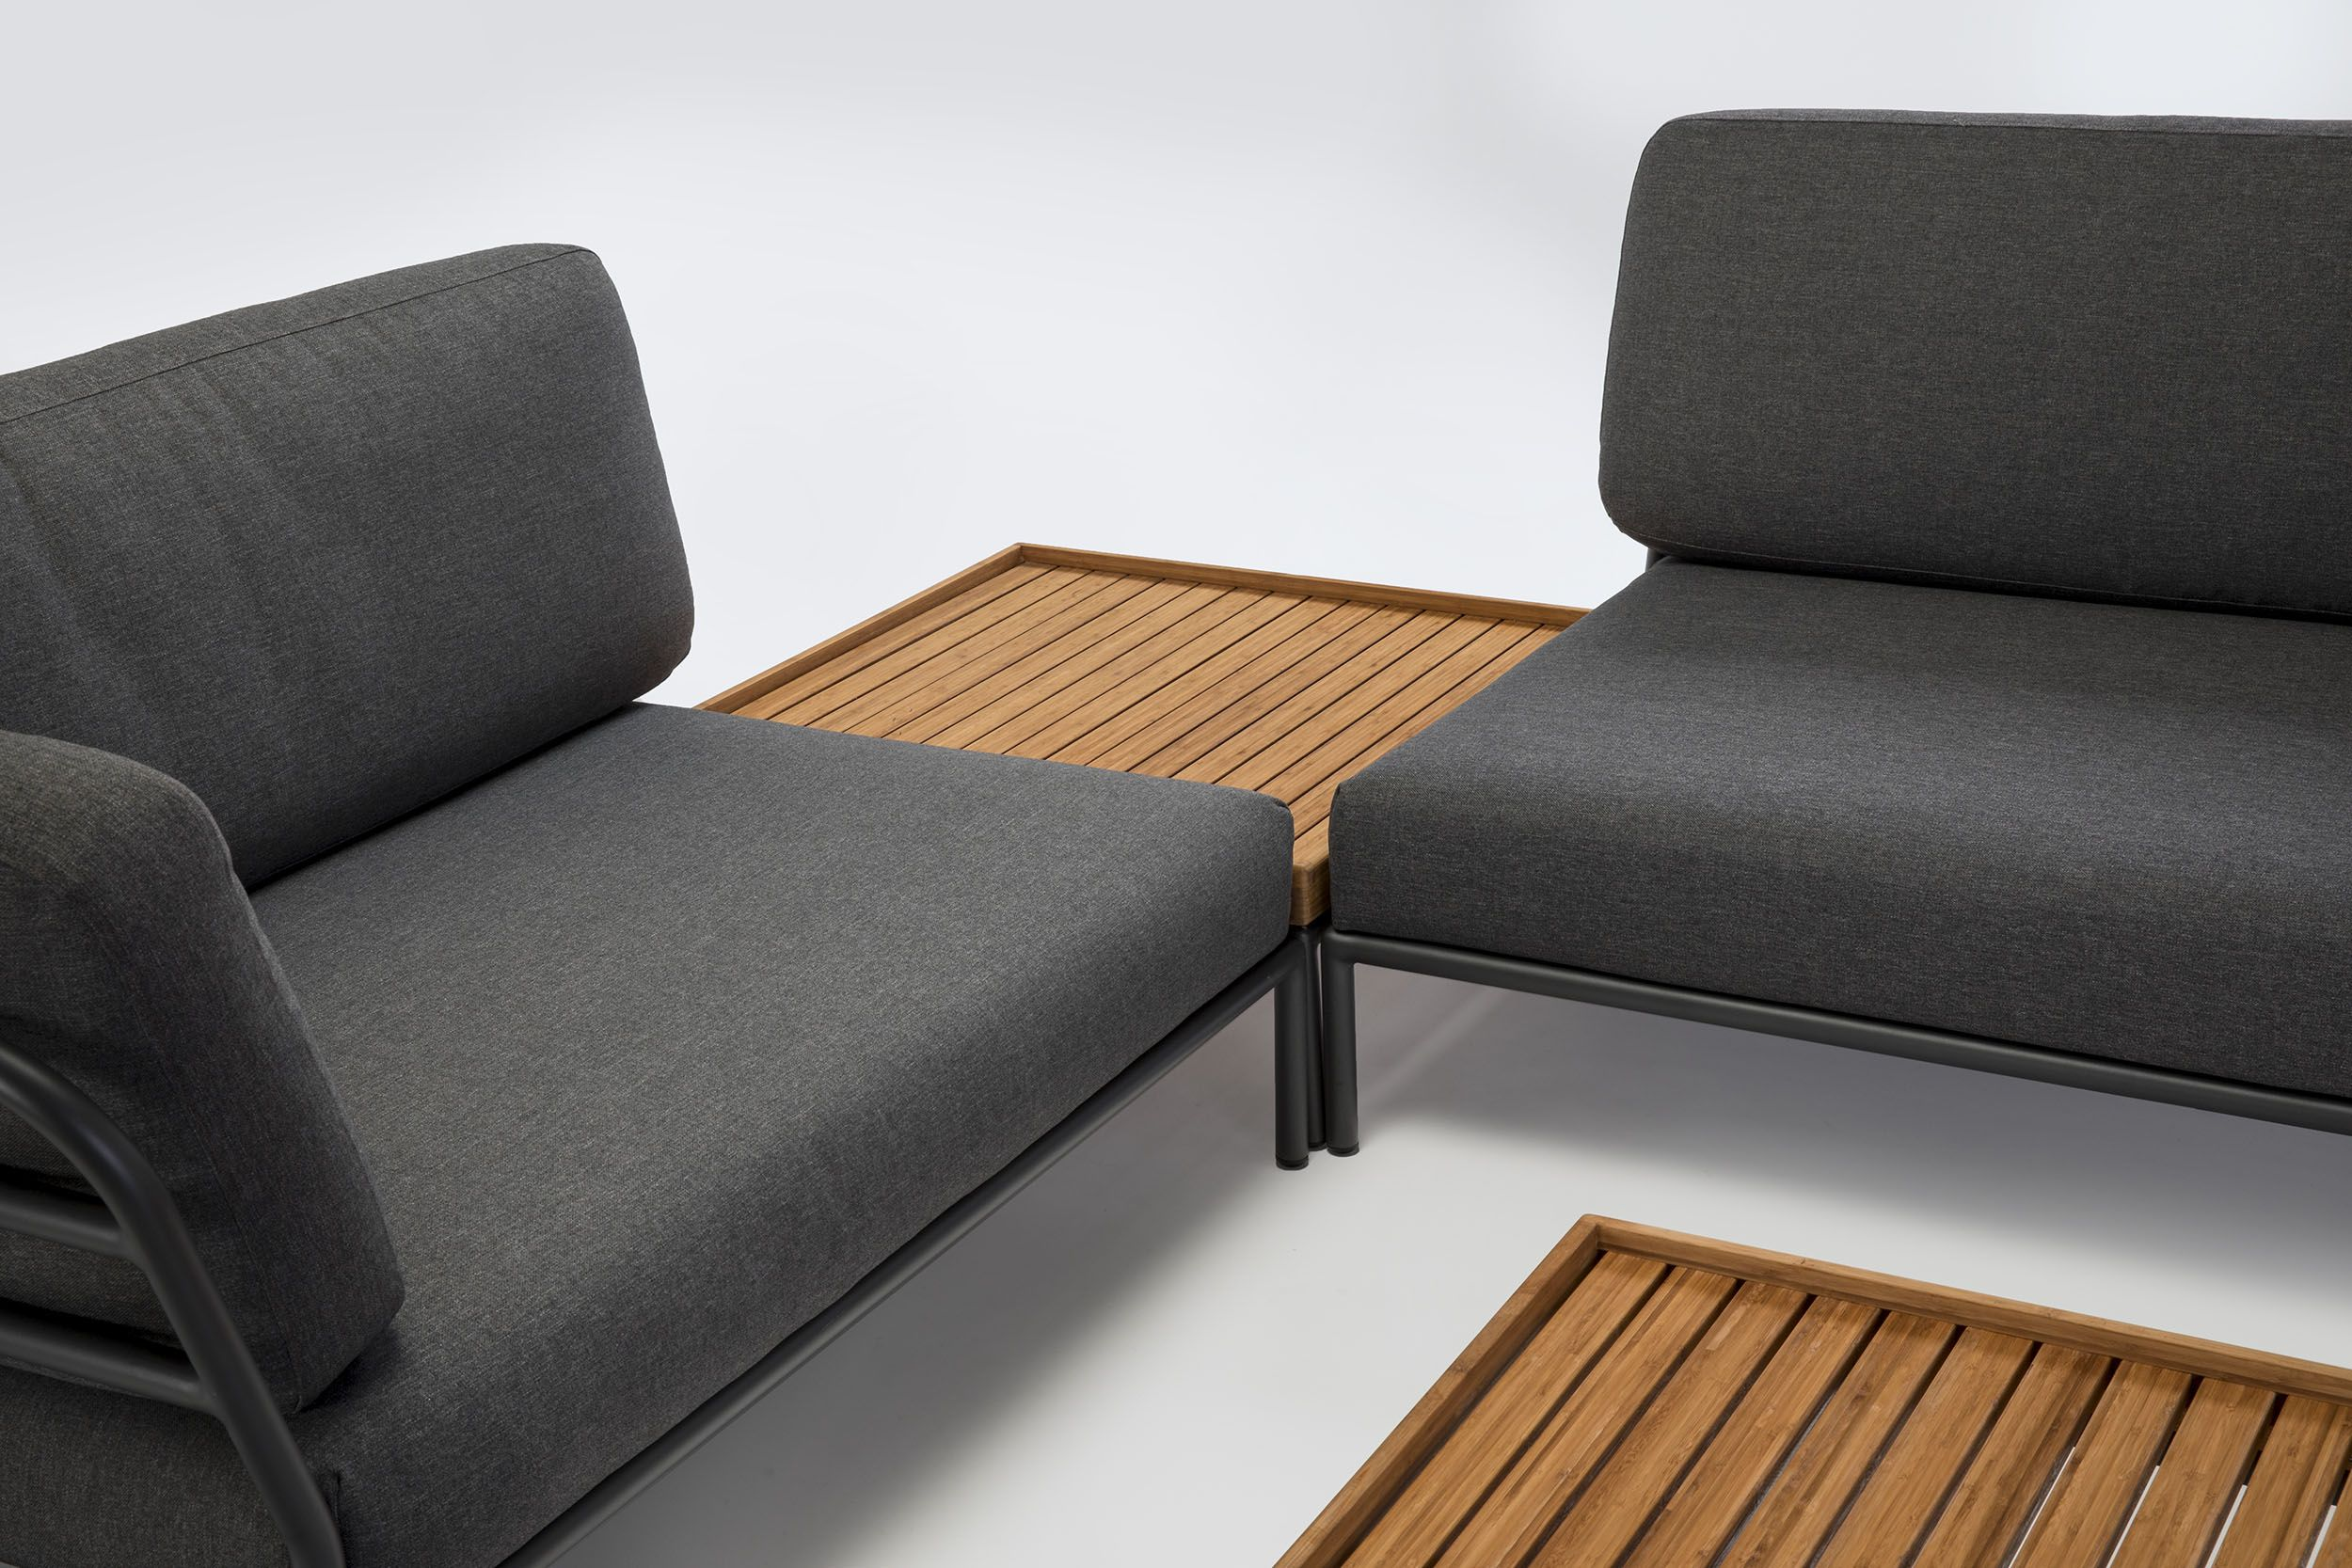 Schlafsofa Dänisches Design Level Outdoor Lounge Modules From Houe Outdoor Outdoor Lounge